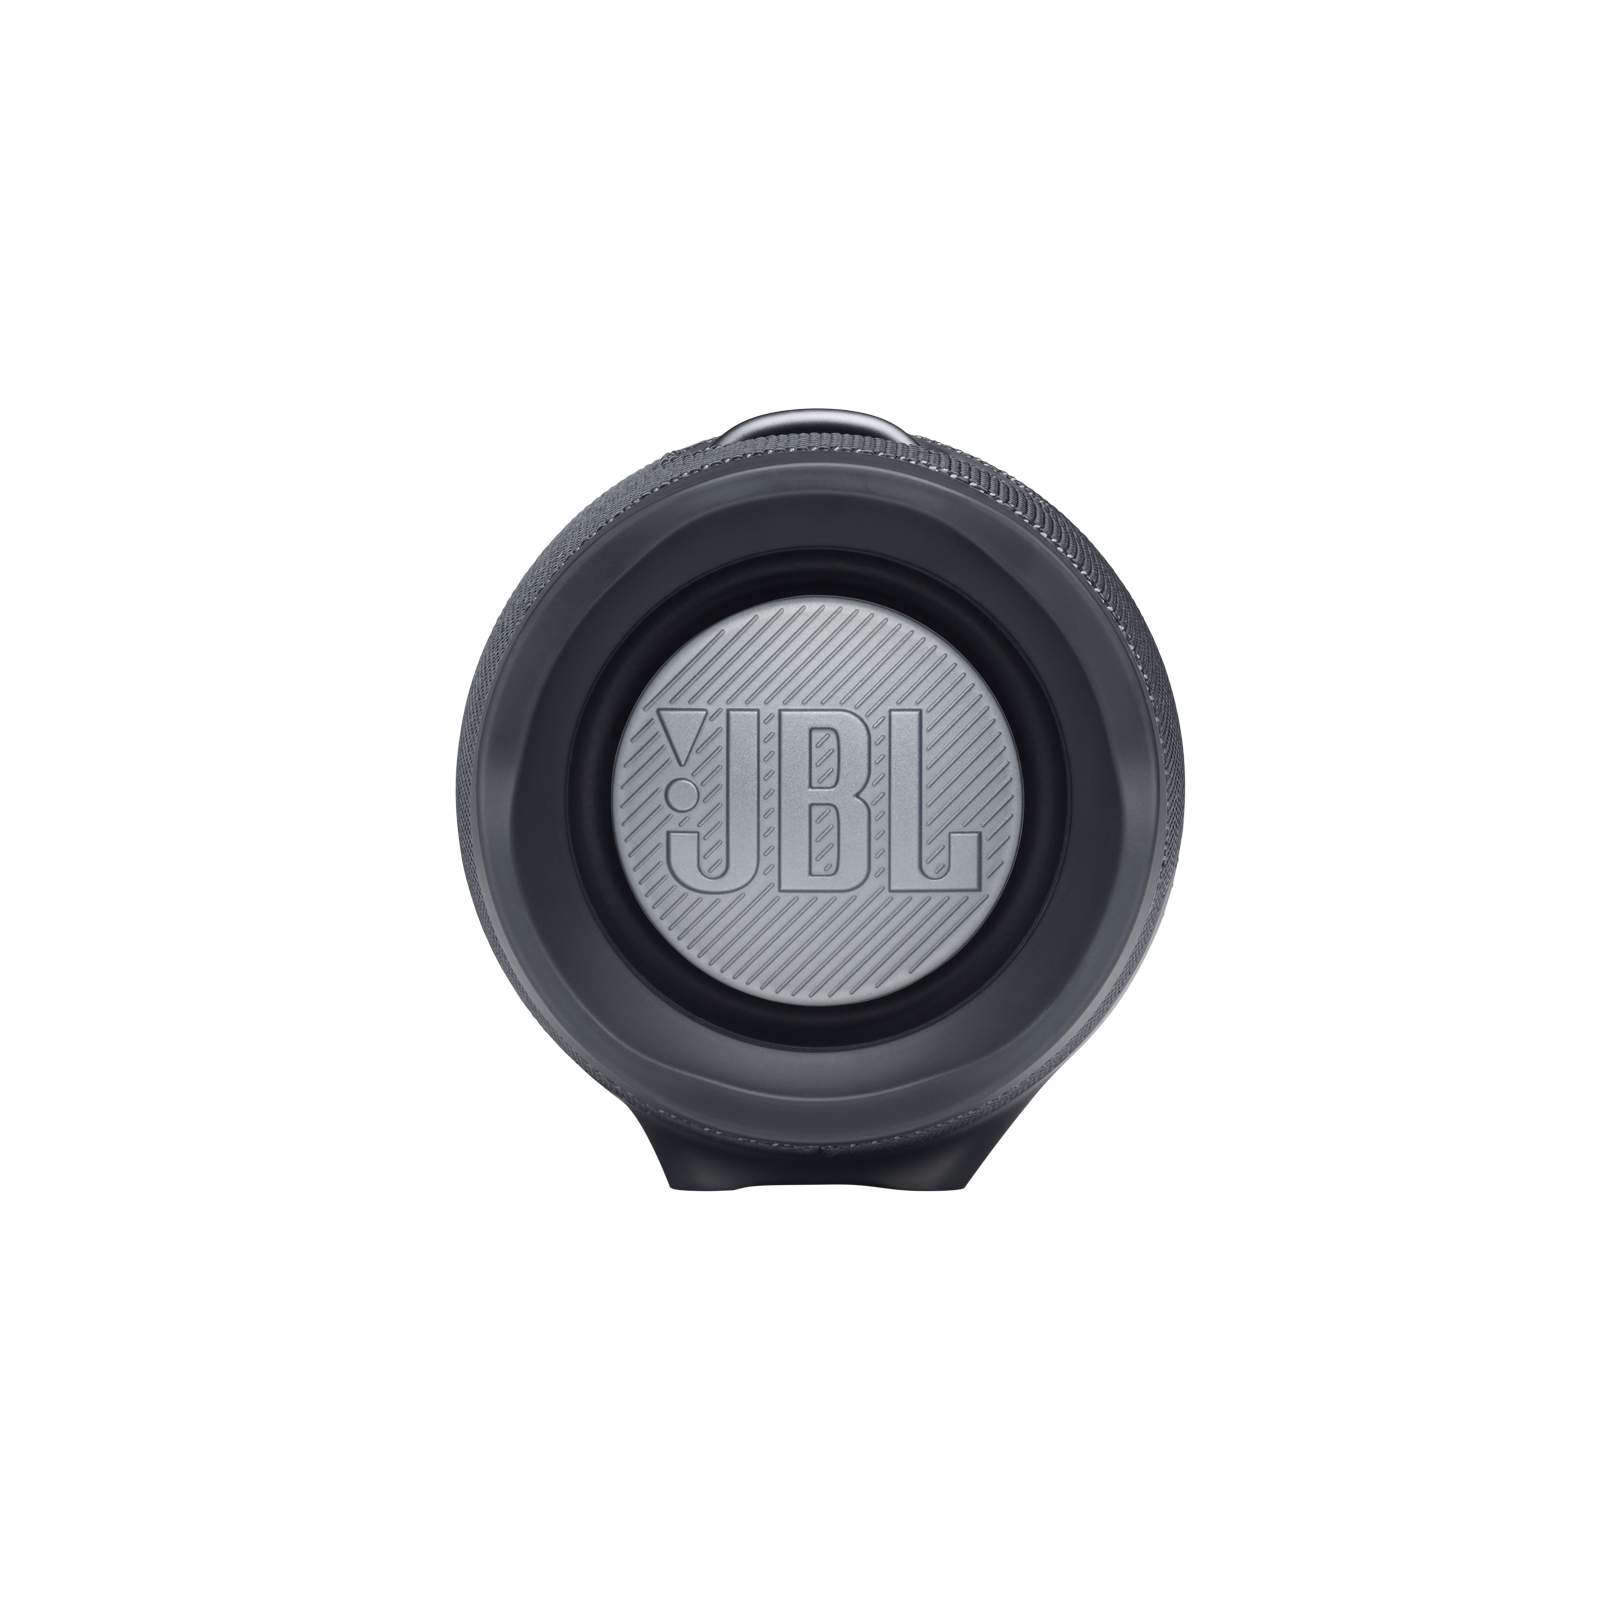 JBL Xtreme 2 Gun Metal - Gun Metal - Portable Bluetooth Speaker - Right